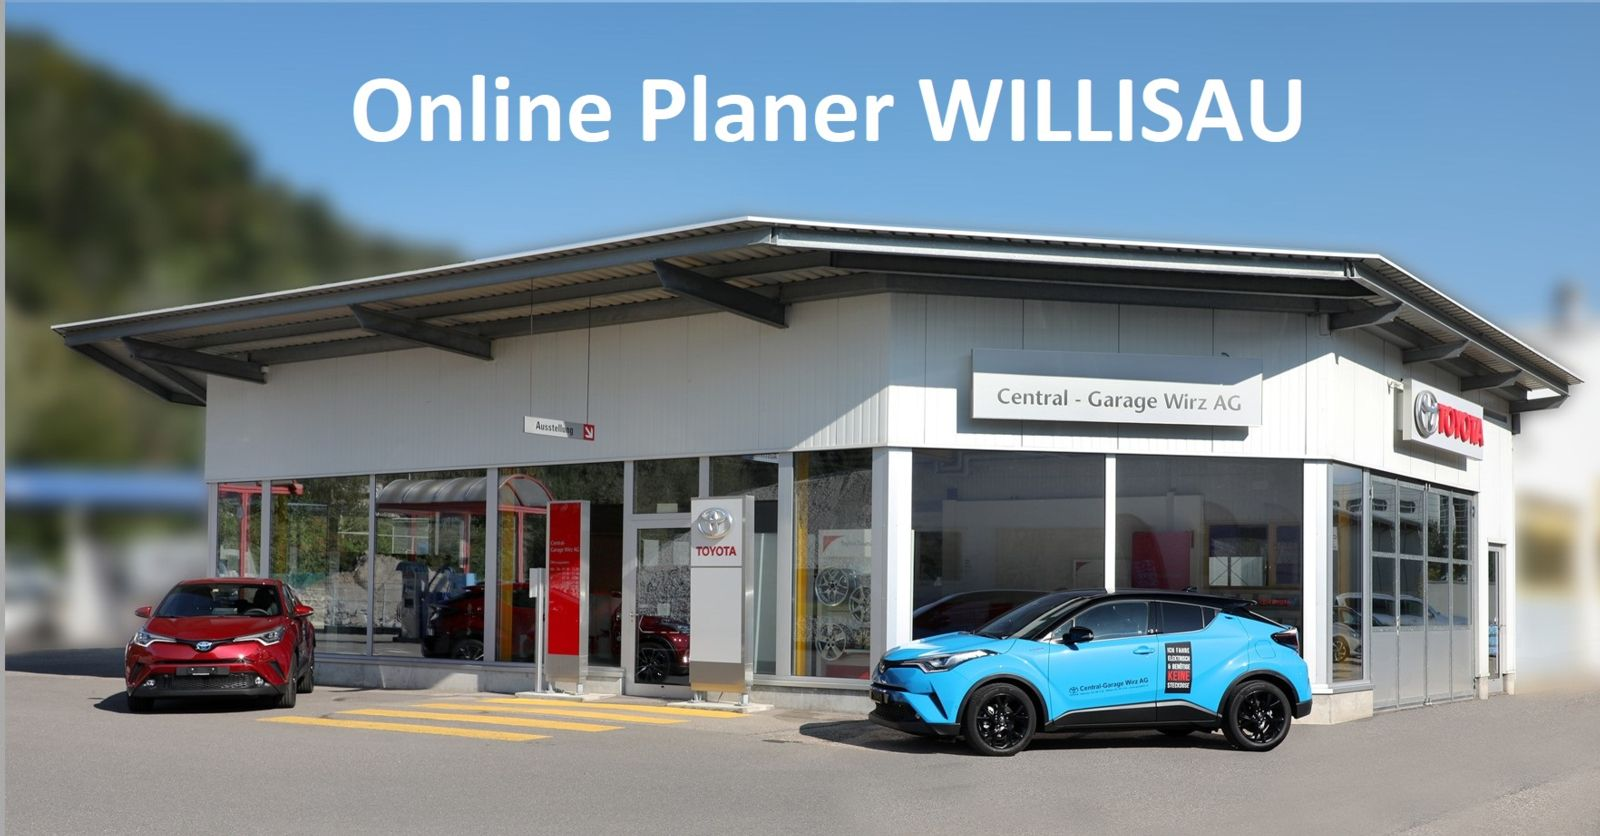 Online Terminbuchung  Central-Garage Wirz AG Willisau